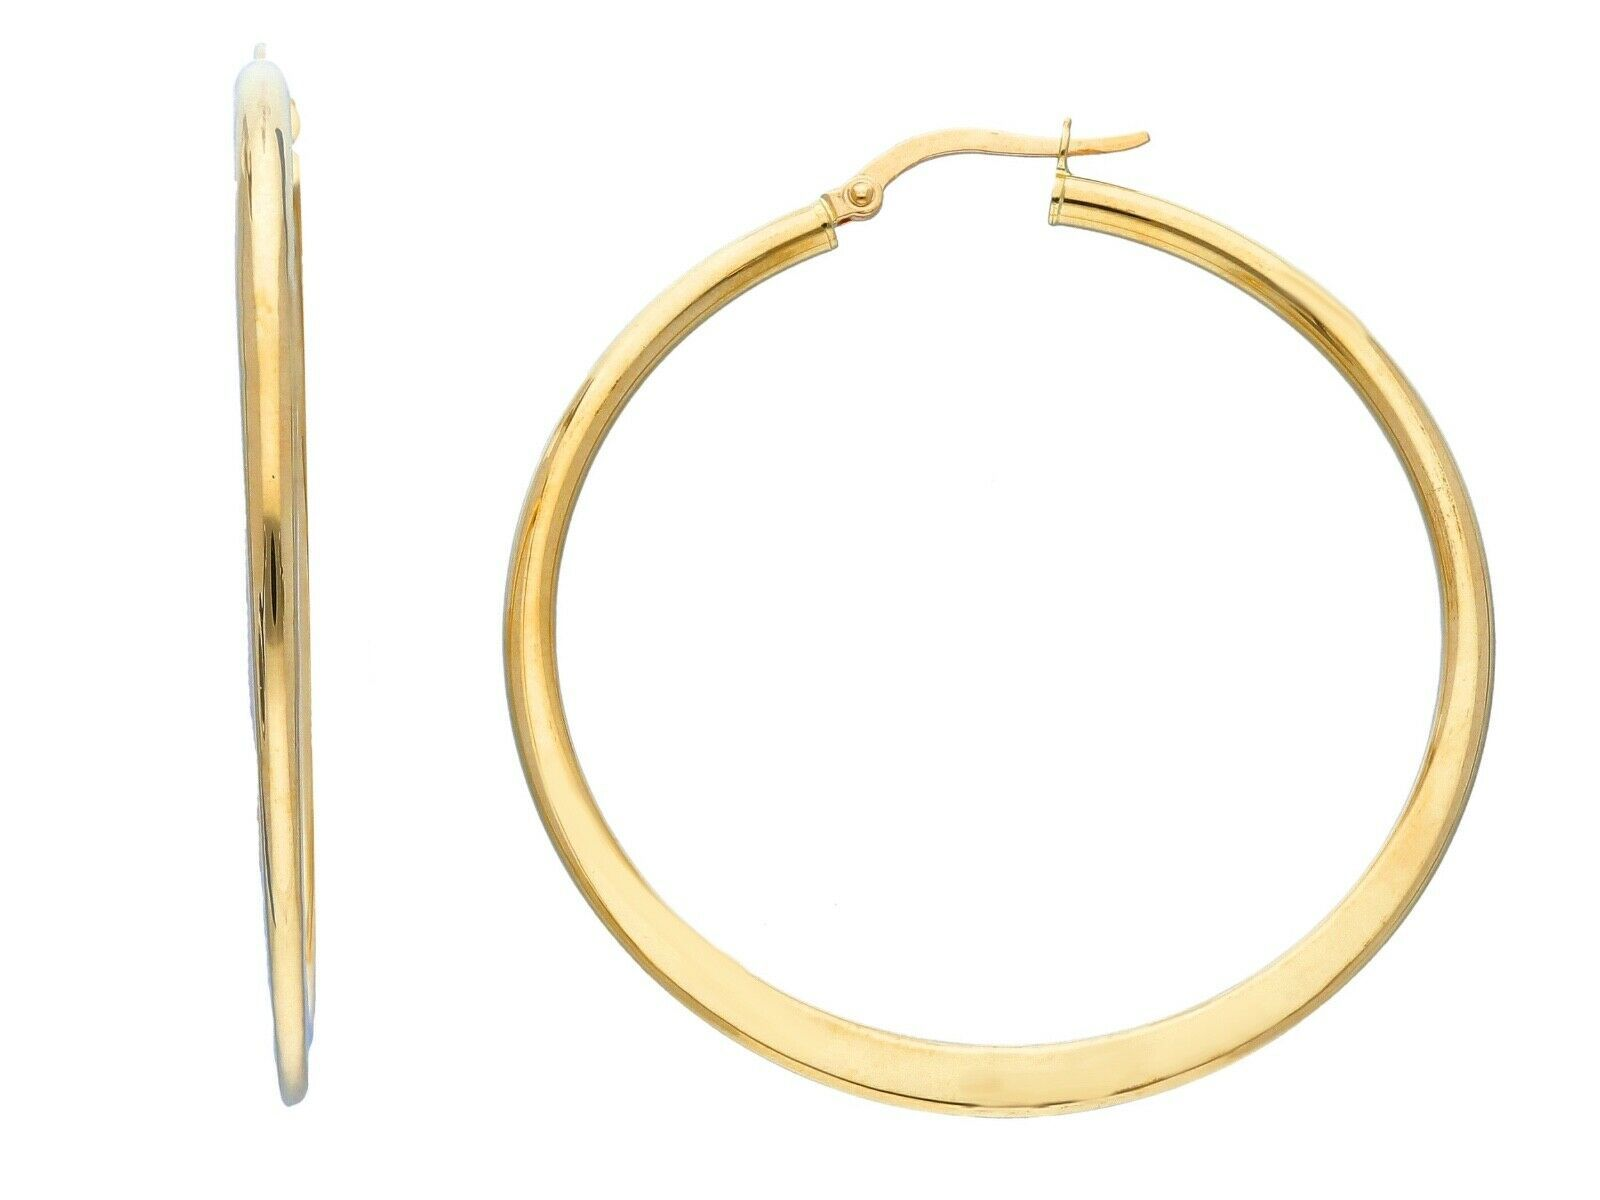 18K YELLOW GOLD ROUND CIRCLE EARRINGS DIAMETER 40 MM GLOSSY BRIGHT MADE IN ITALY